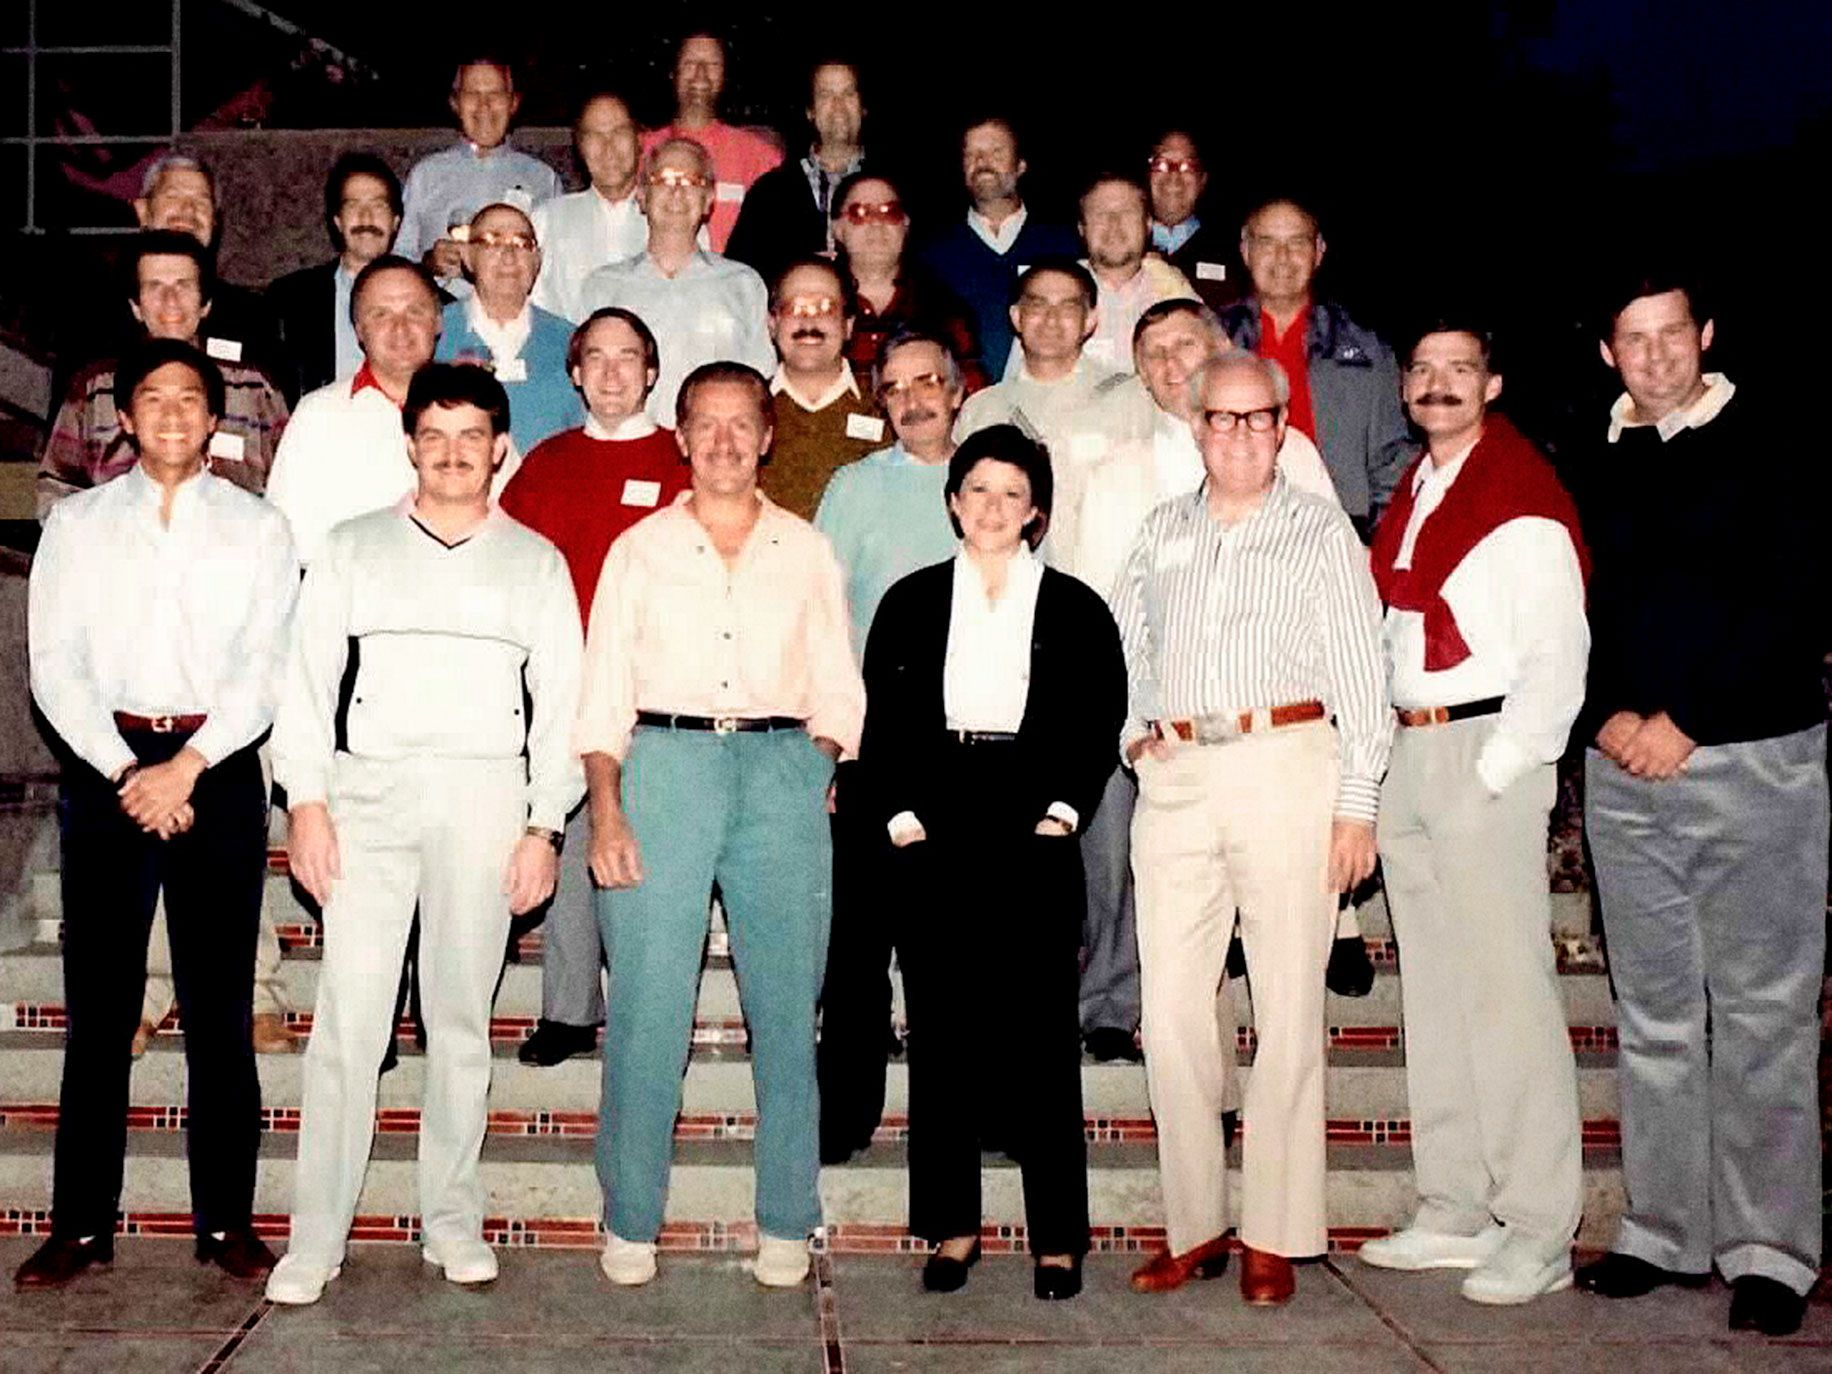 MJ Elmore, front row center, was the only woman in a group that included 26 men at the IVP retreat in 1987. As a partner at the venture firm, she led its investment in Sequent Computers and numerous other startups.